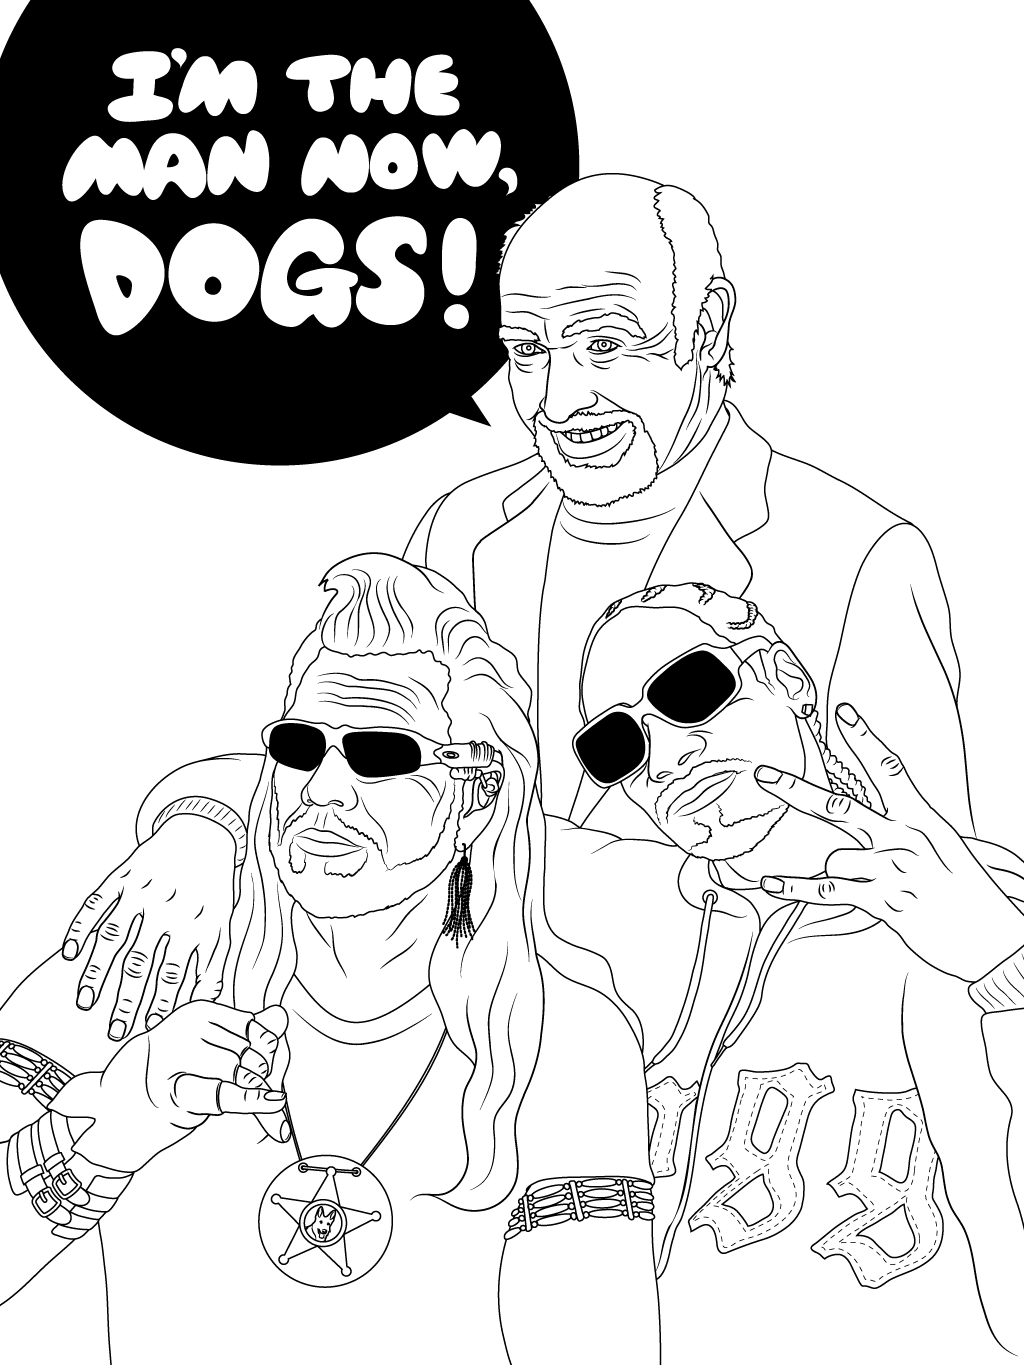 I'm The Man Now, Dogs!